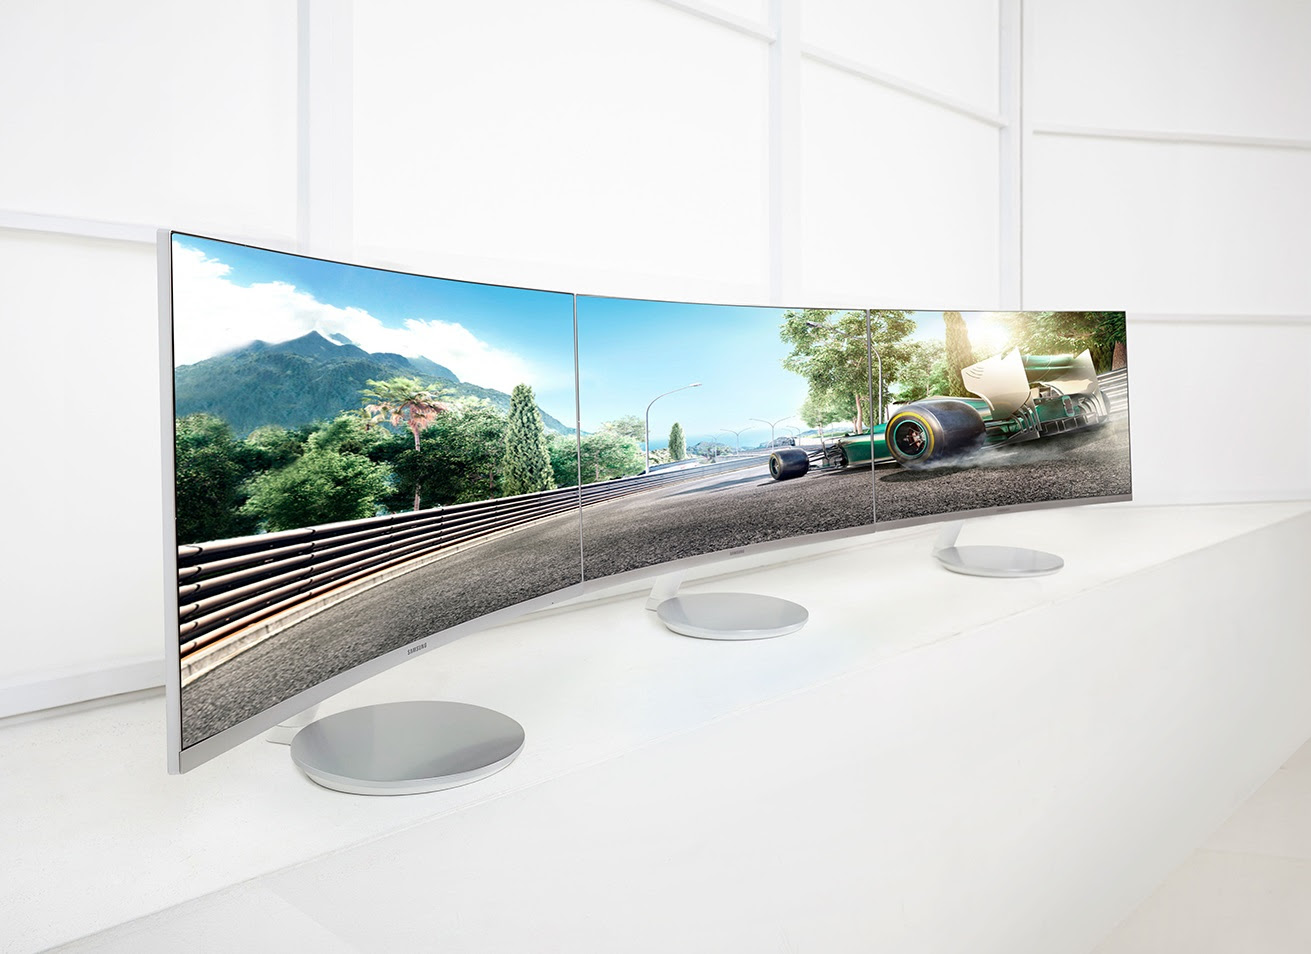 The 27-inch CF591 curved displays (Image source: Samsung)